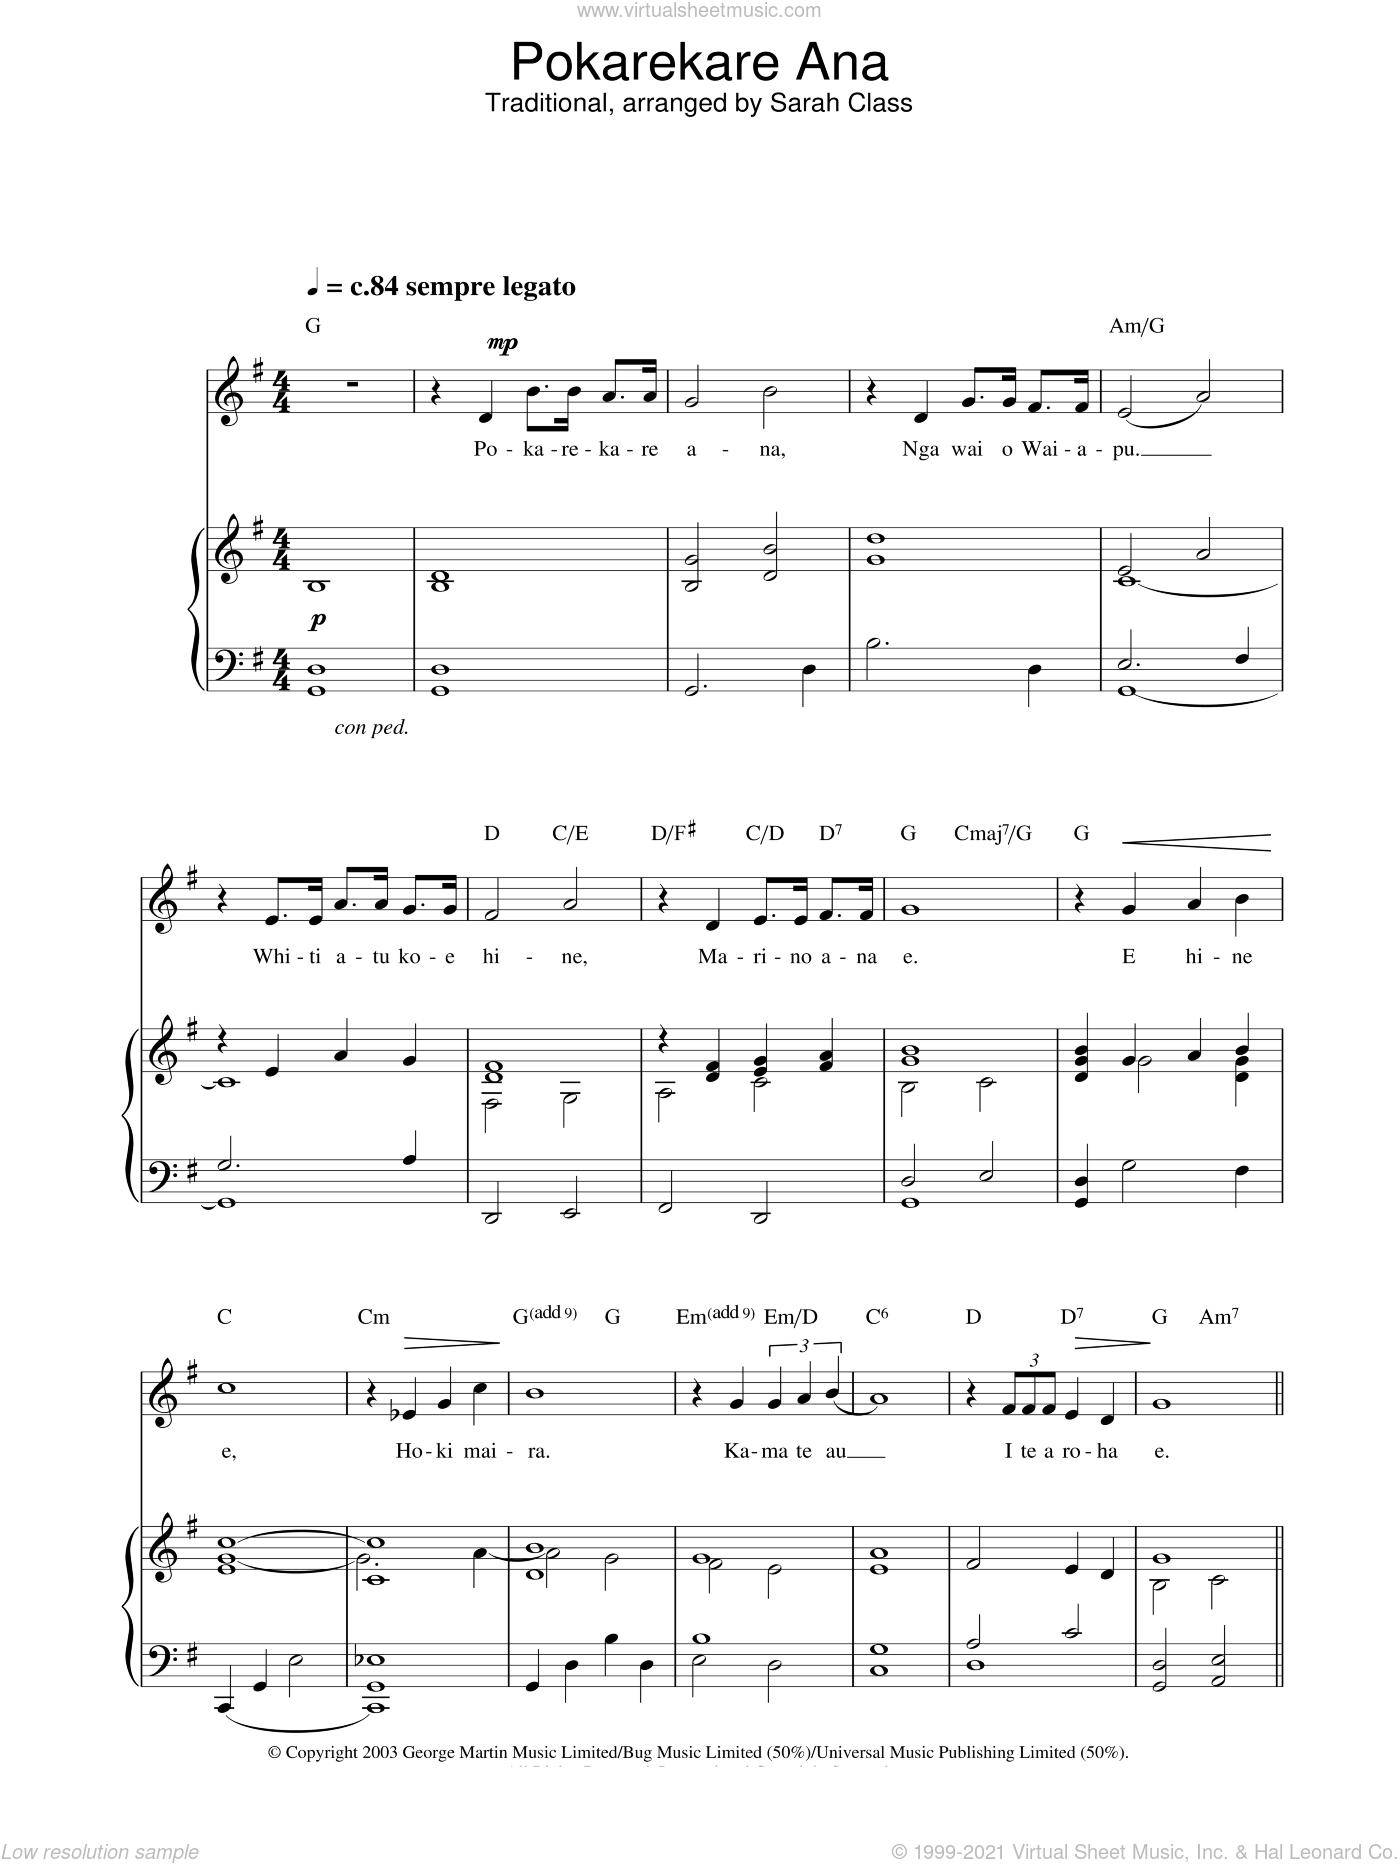 Pokarekare Ana sheet music for voice, piano or guitar by Hayley Westenra, intermediate skill level